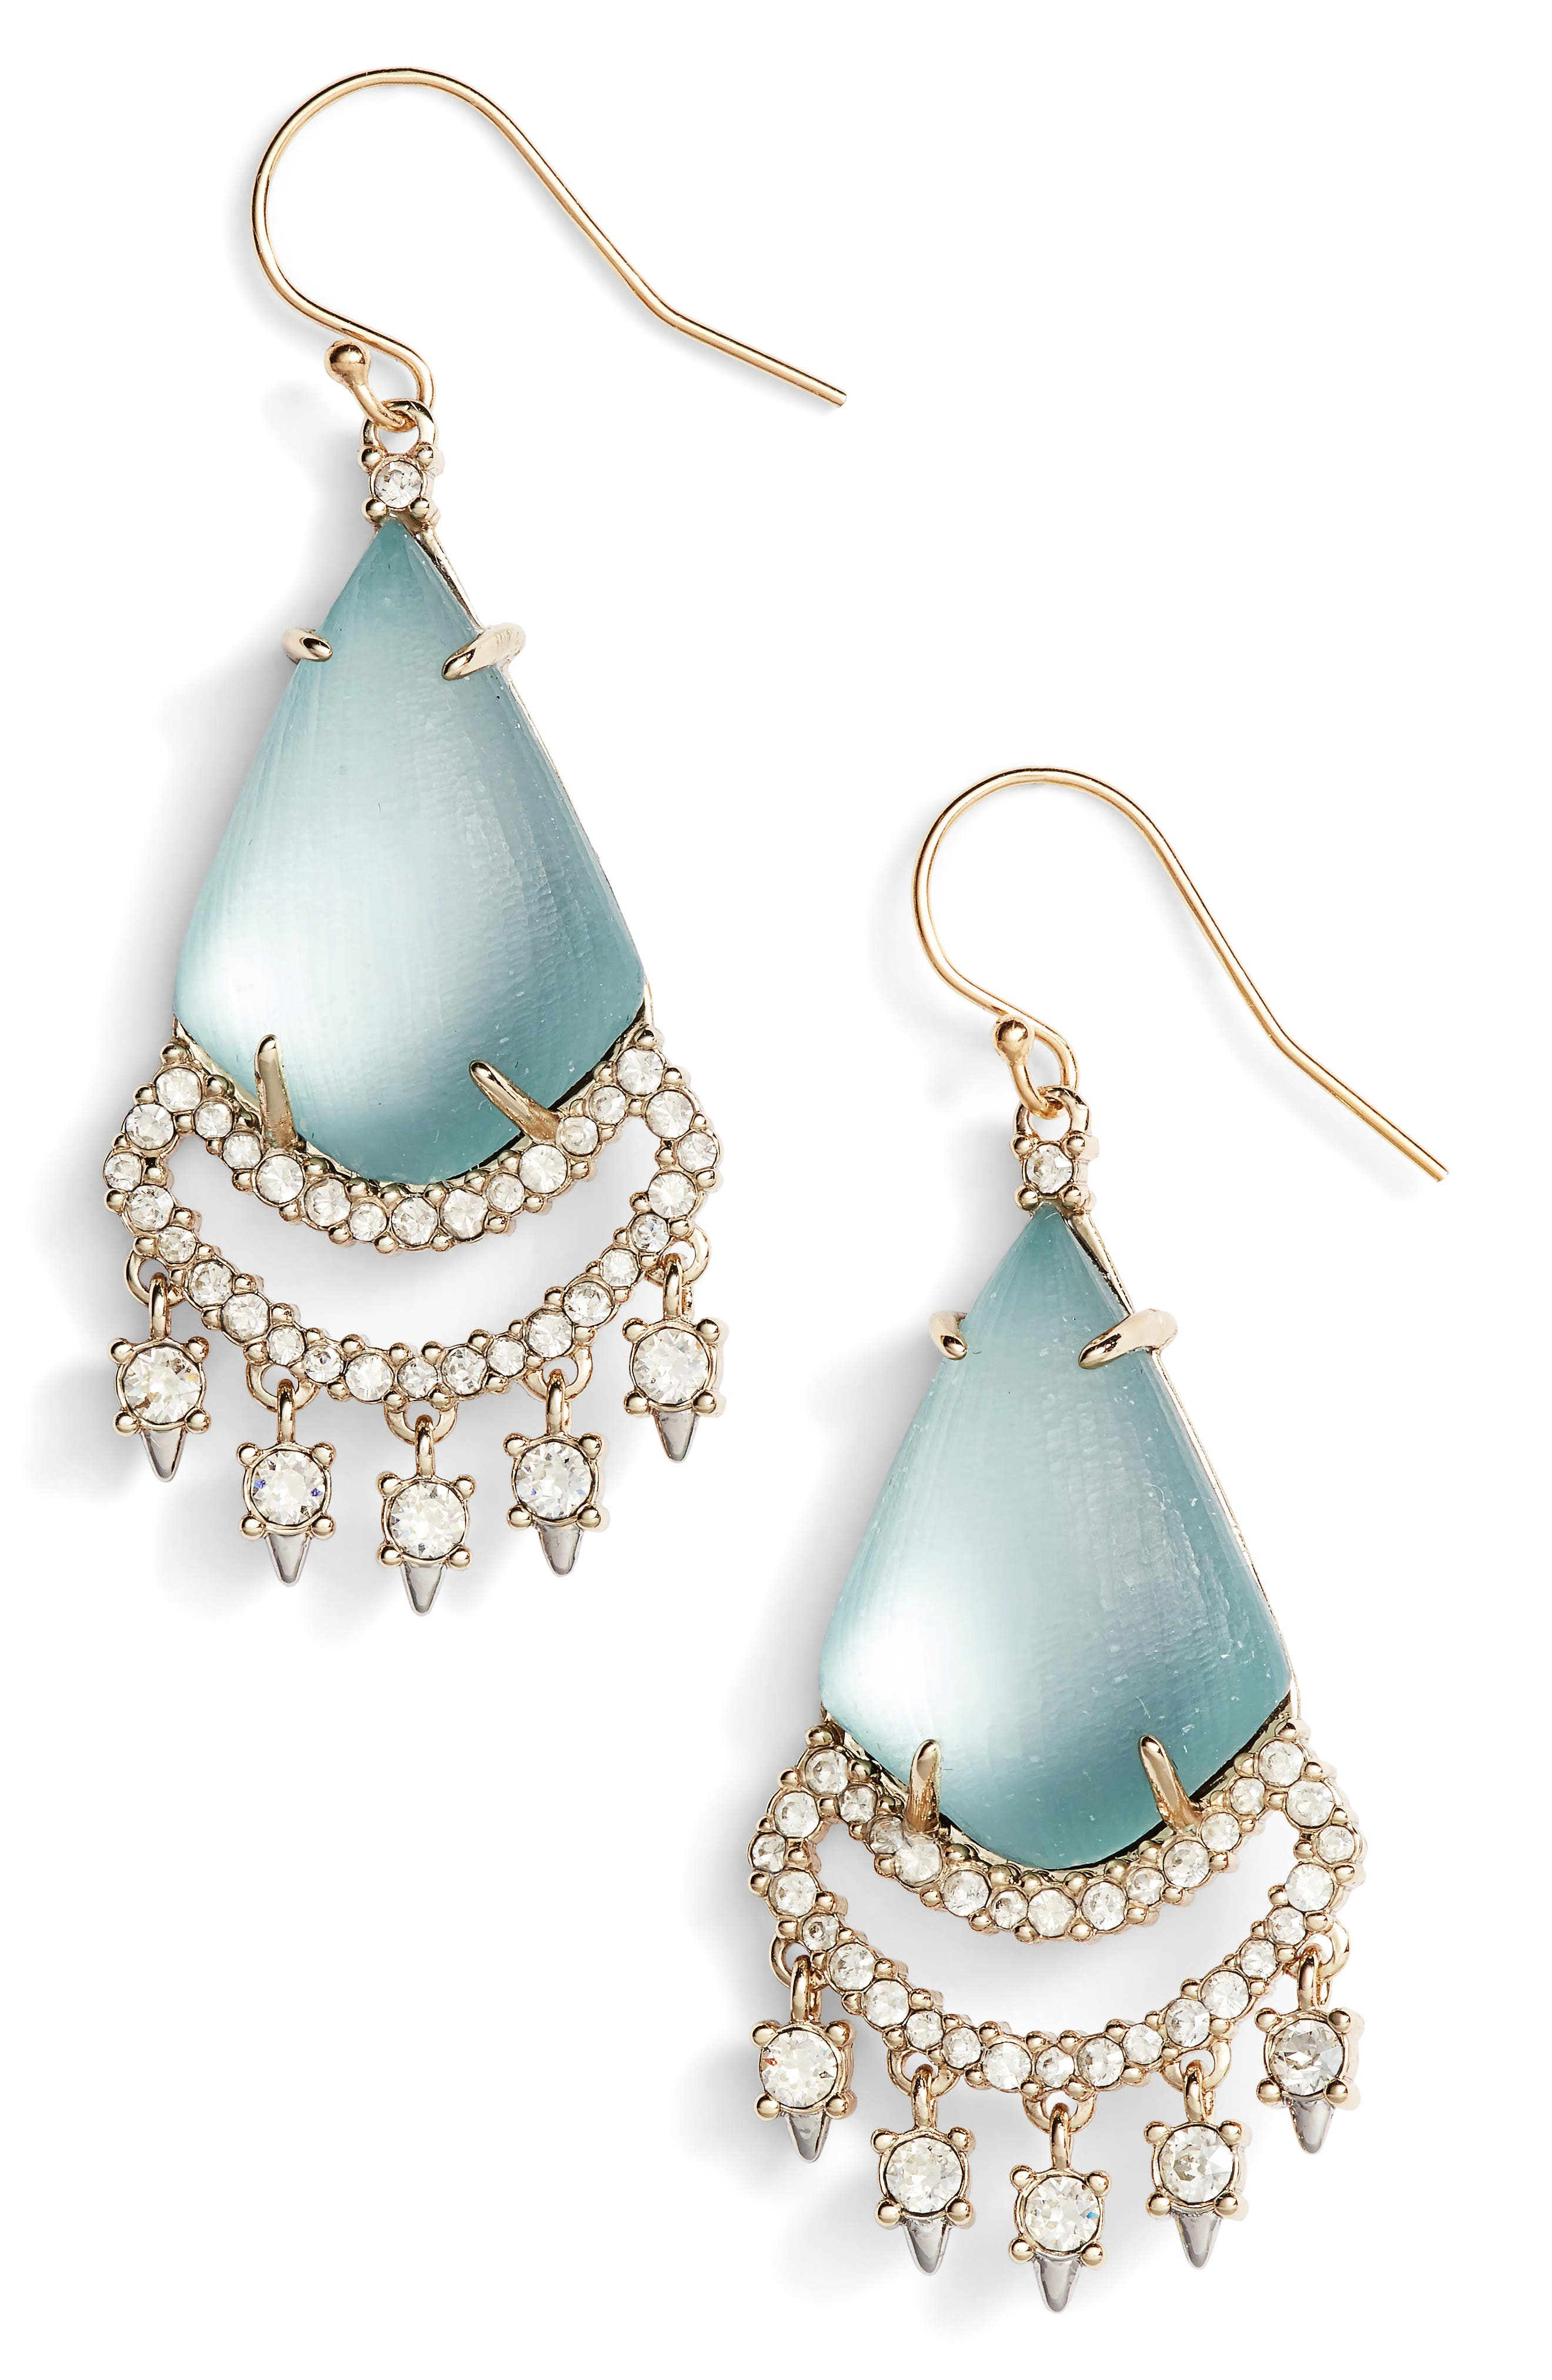 Crystal Lace Lucite<sup>®</sup> Chandelier Earrings,                             Main thumbnail 1, color,                             050